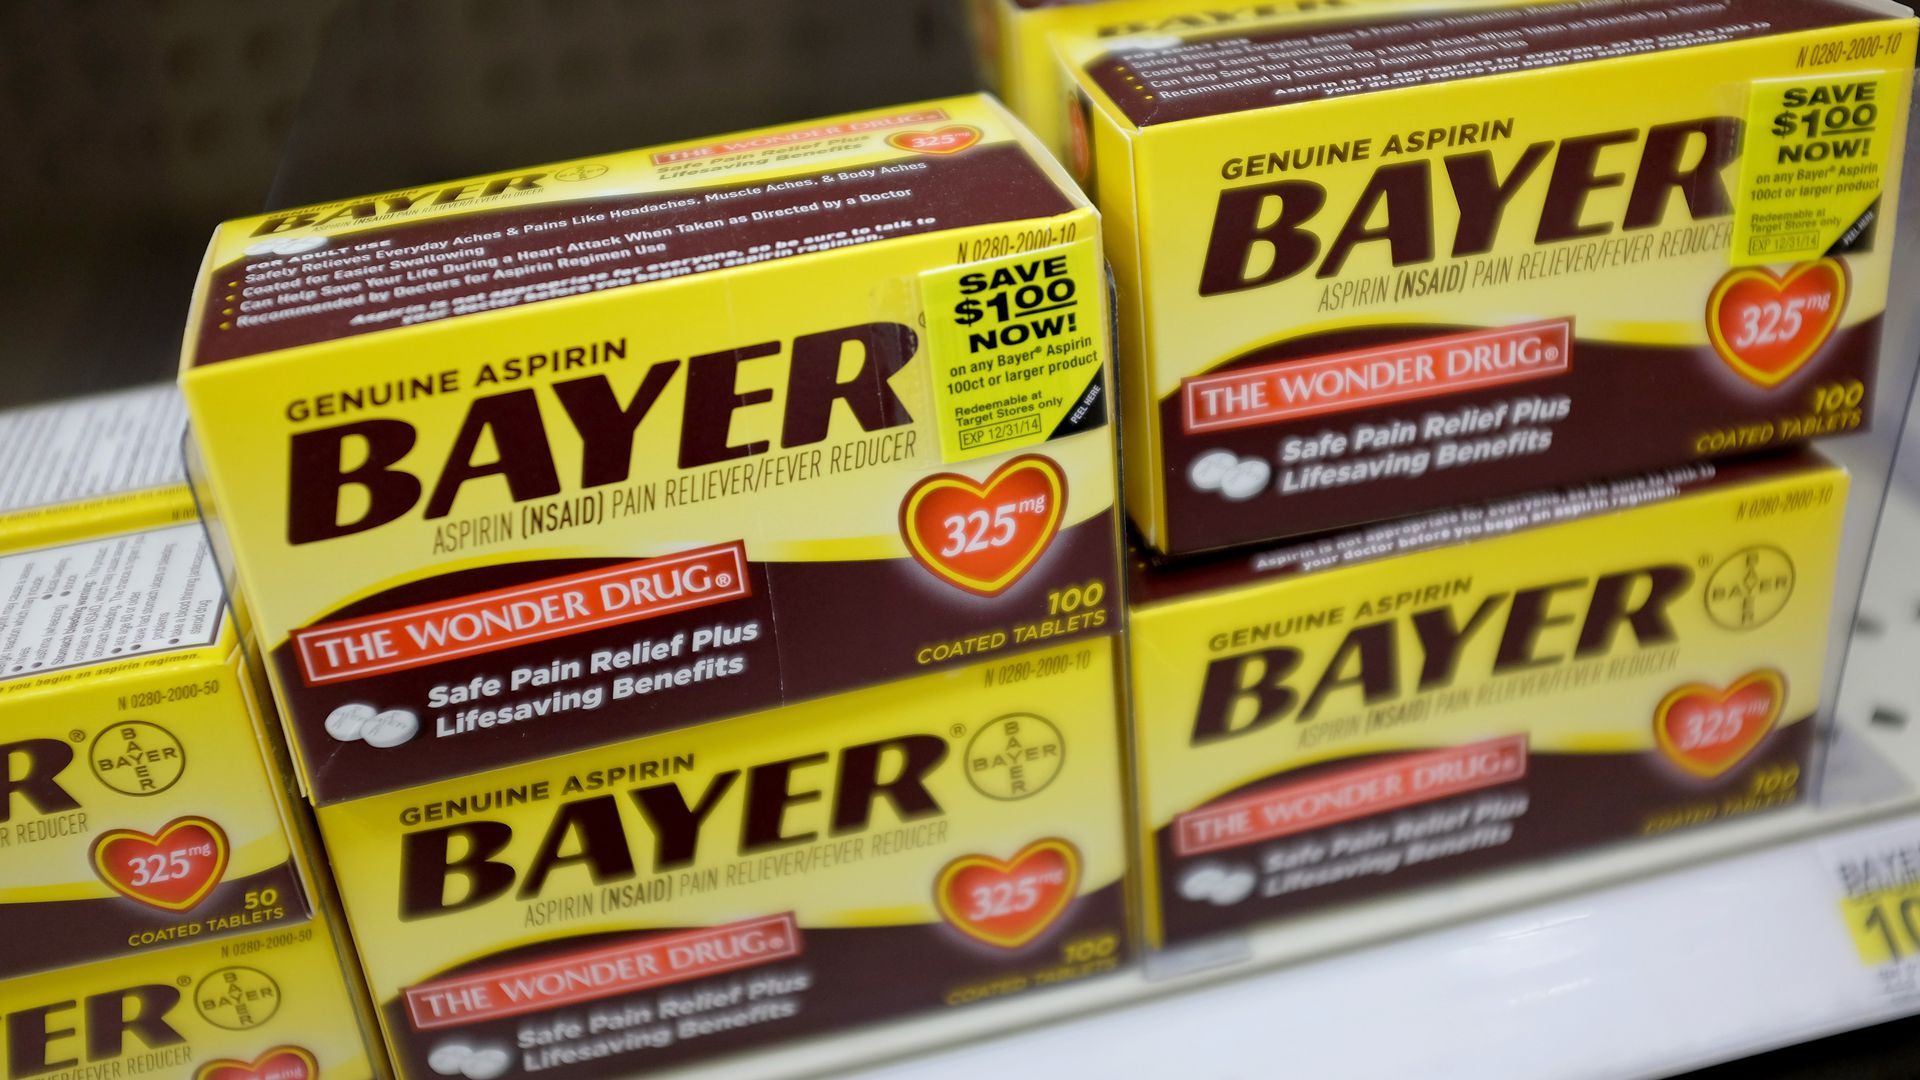 Boxes of Bayer painkillers on a shelf